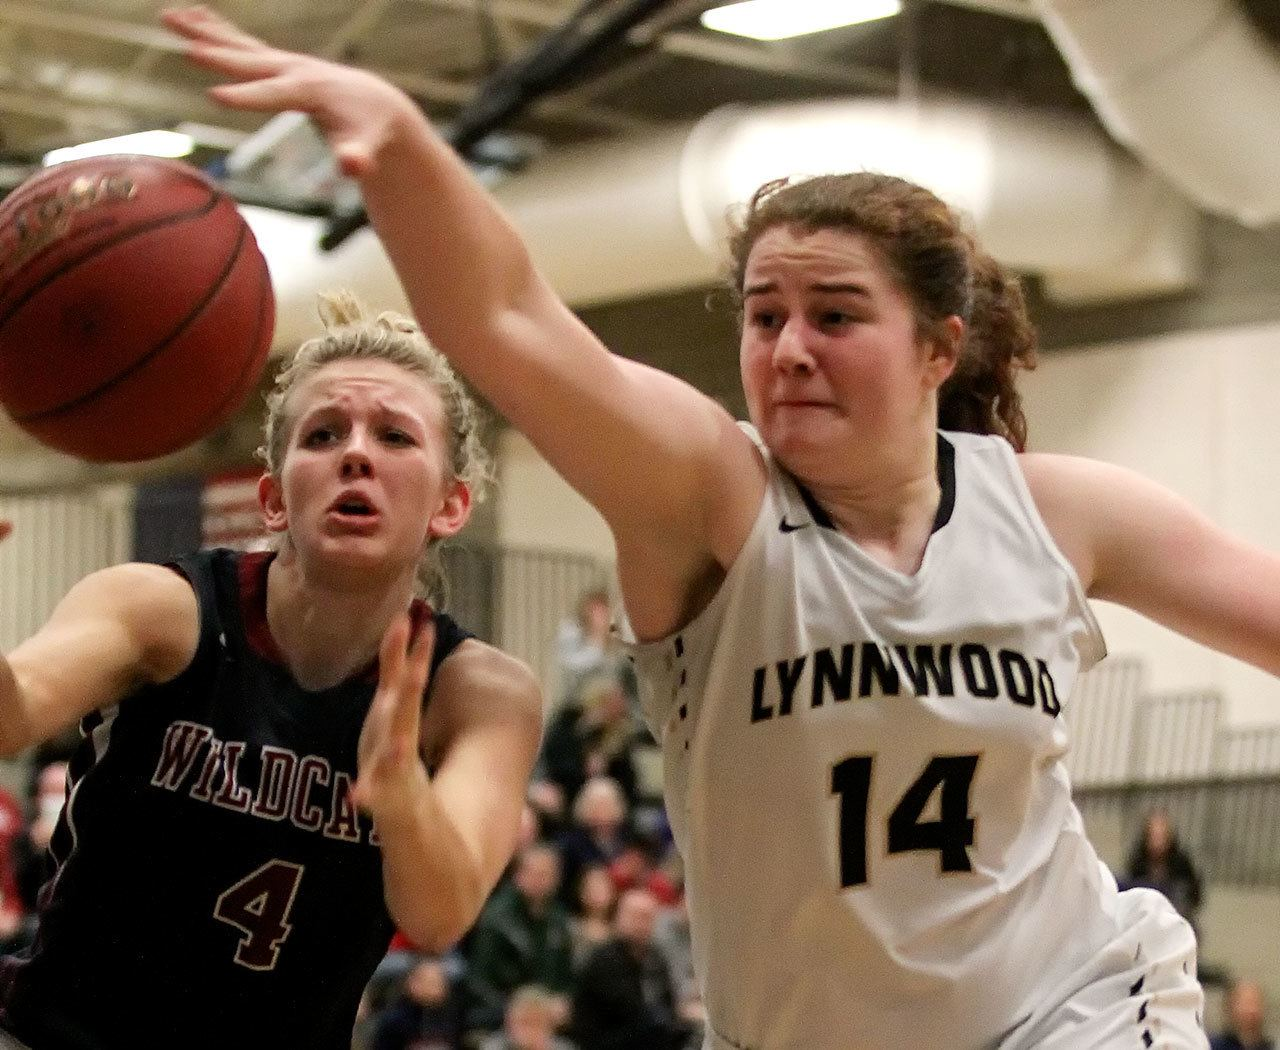 Mt. Spokane's Miahna Waters (left) and Lynnwood's Kelsey Rogers vie for a loose ball during a regional playoff game Feb. 25, 2017, at Bothell High School . Lynnwood won 57-46. (Kevin Clark / The Herald)